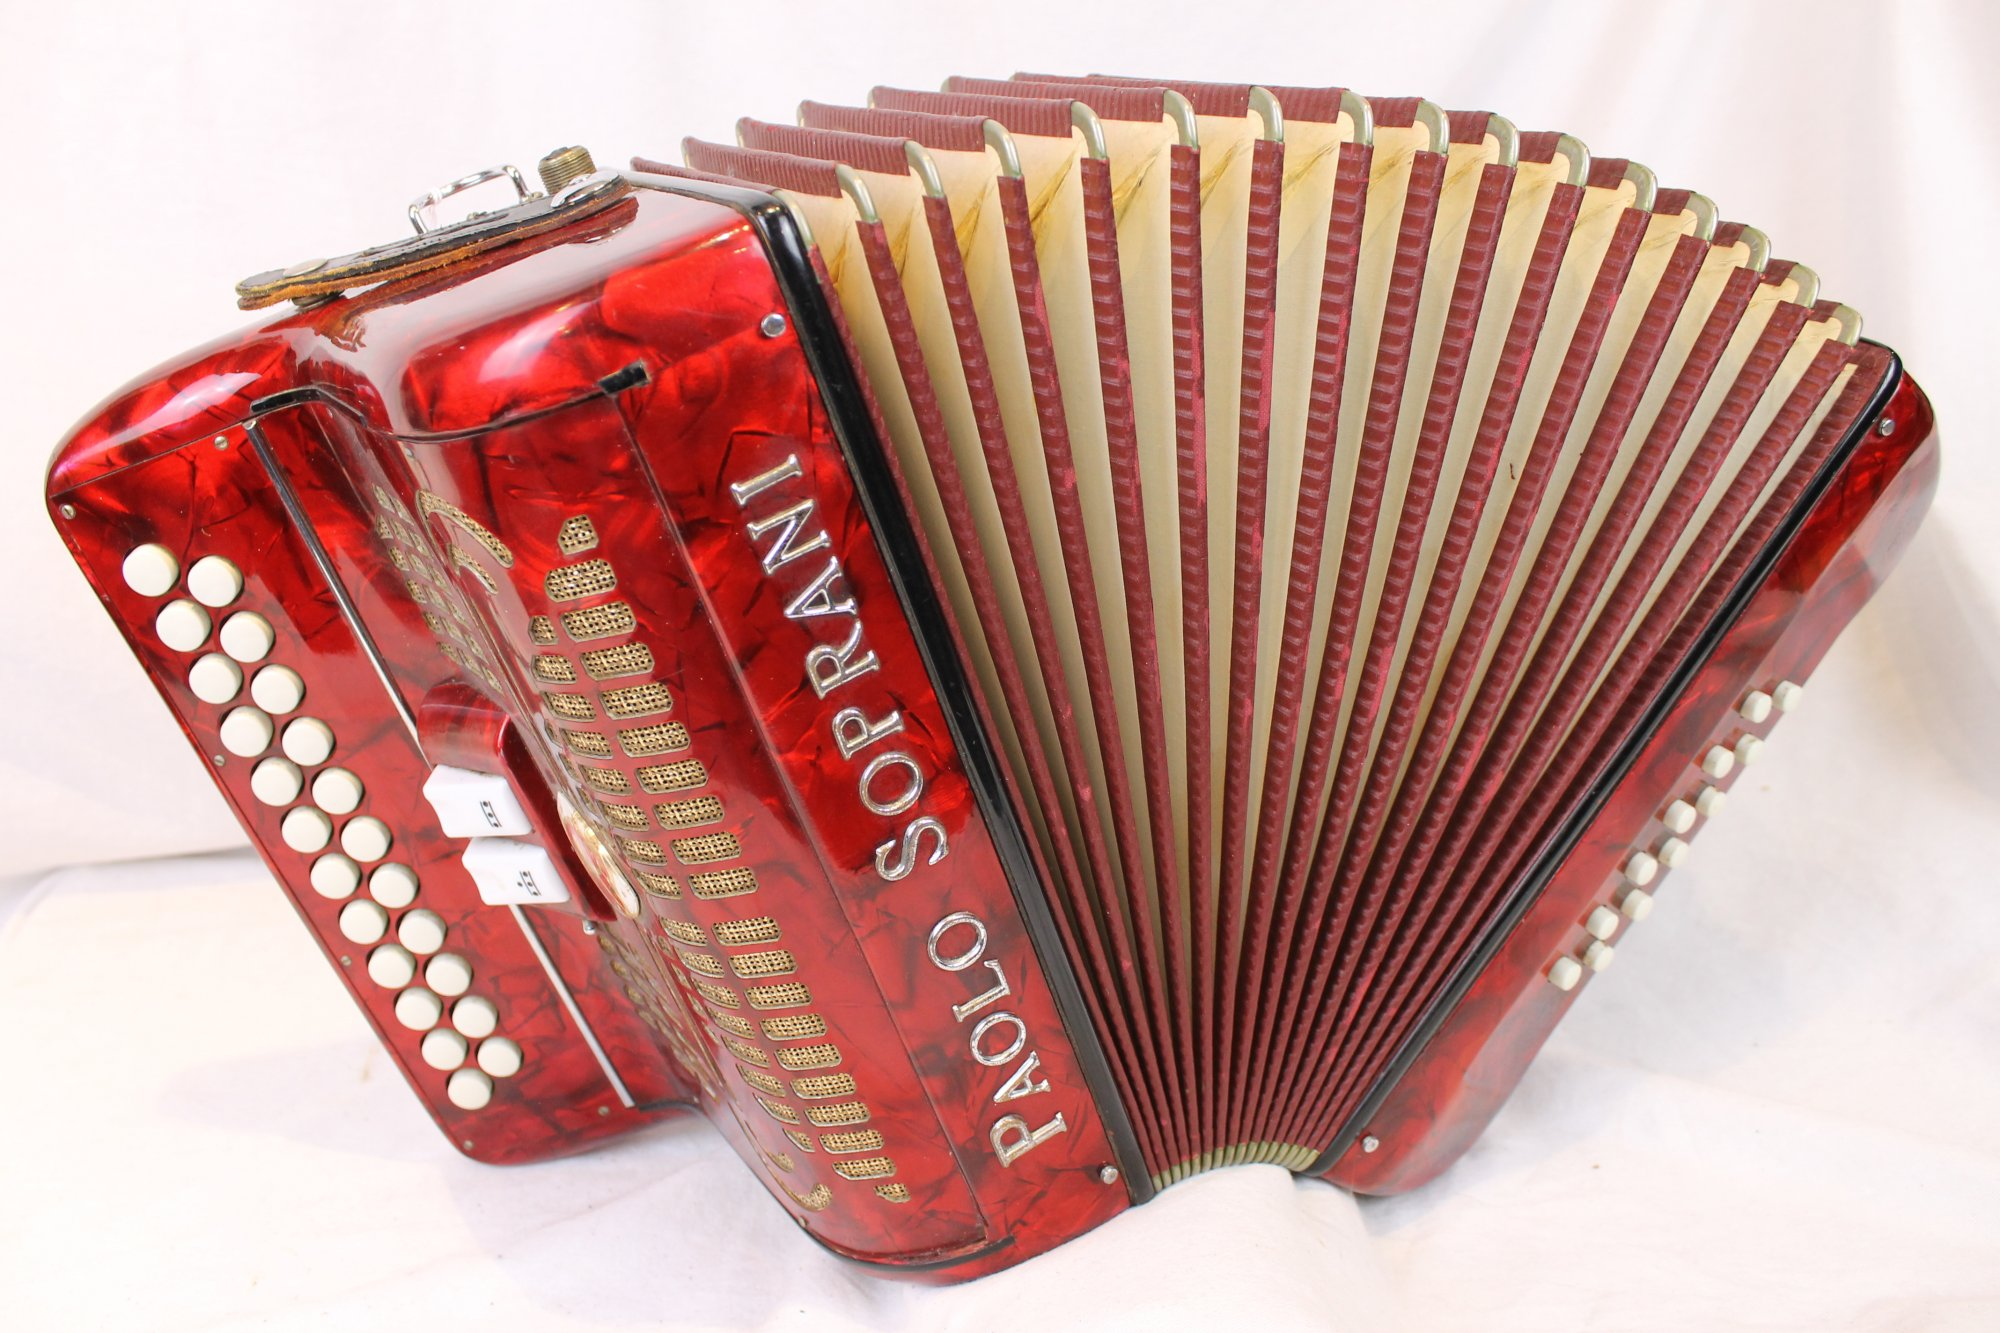 4006 - Red Paolo Soprani Red Badge Diatonic Accordion BC LMMM 23 12